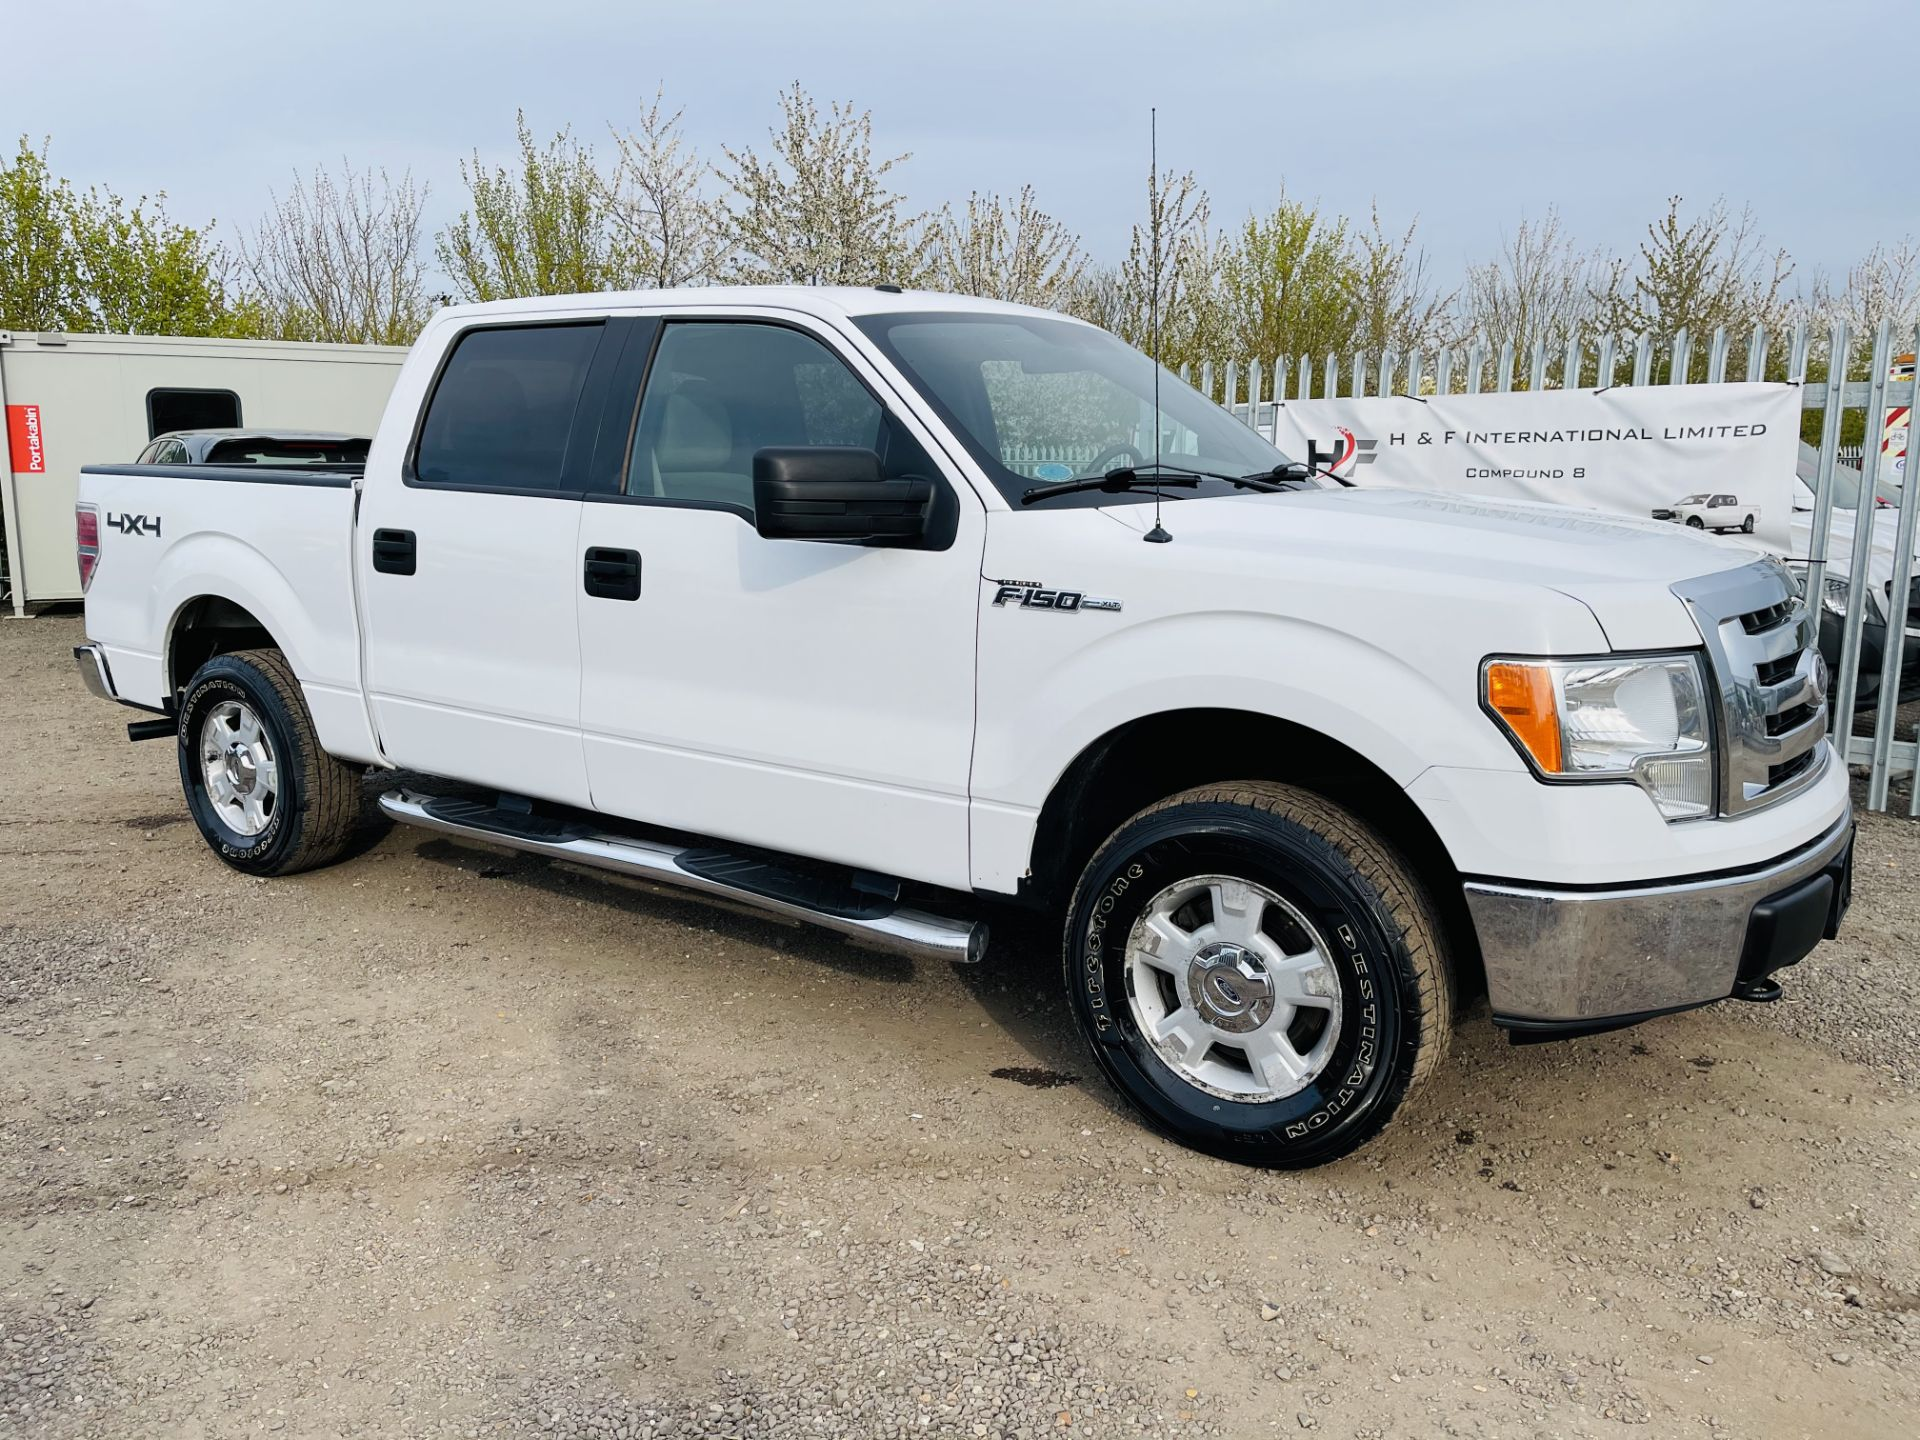 Ford F-150 XLT 4.6L V8 Super-crew 4WD 2010 ' 2010 Year' 6 Seats - Air con - NO RESERVE - Image 18 of 24